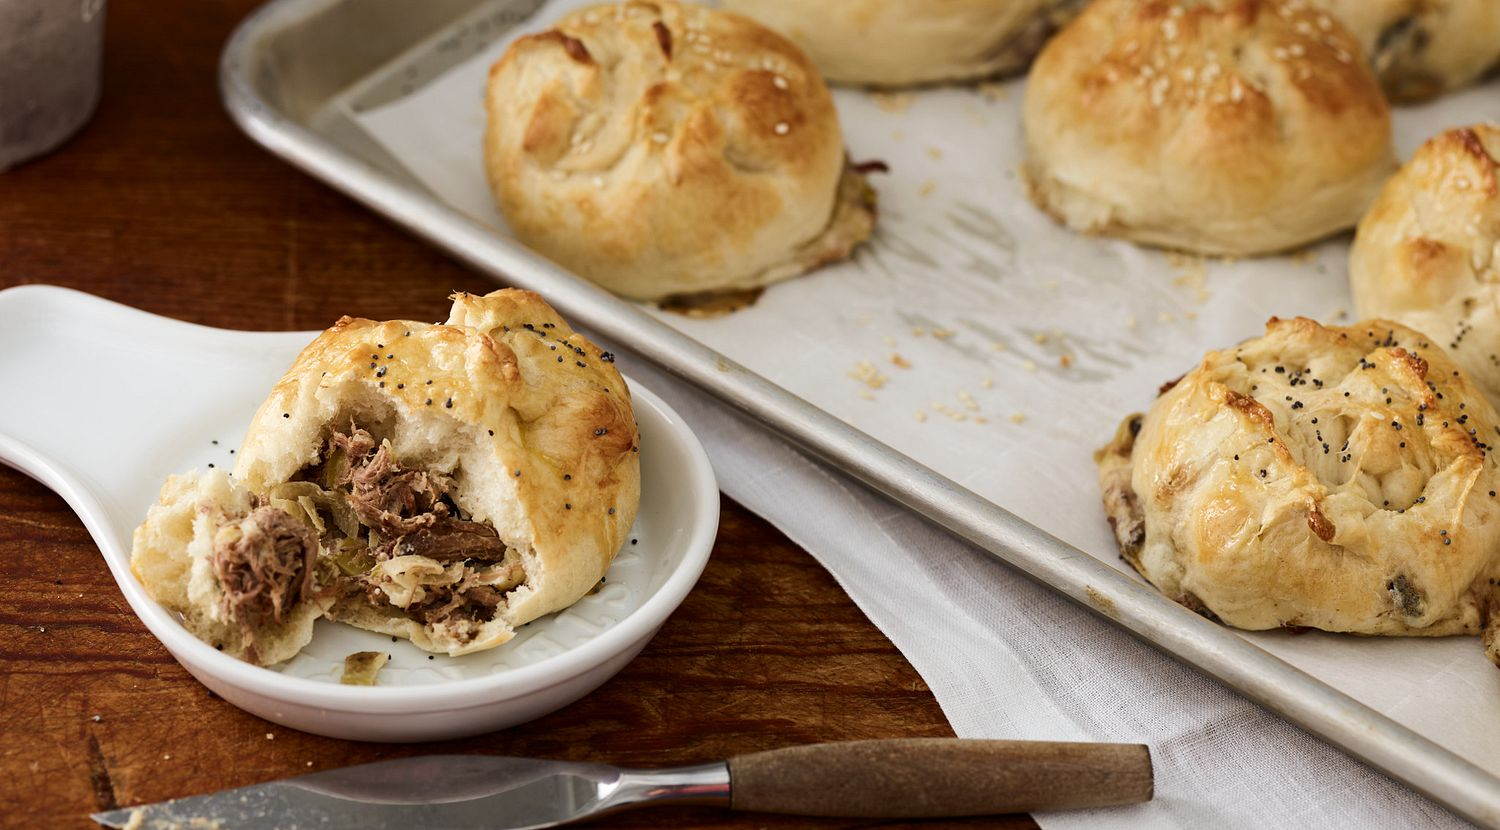 Beef and Caramelized Onion Knishes